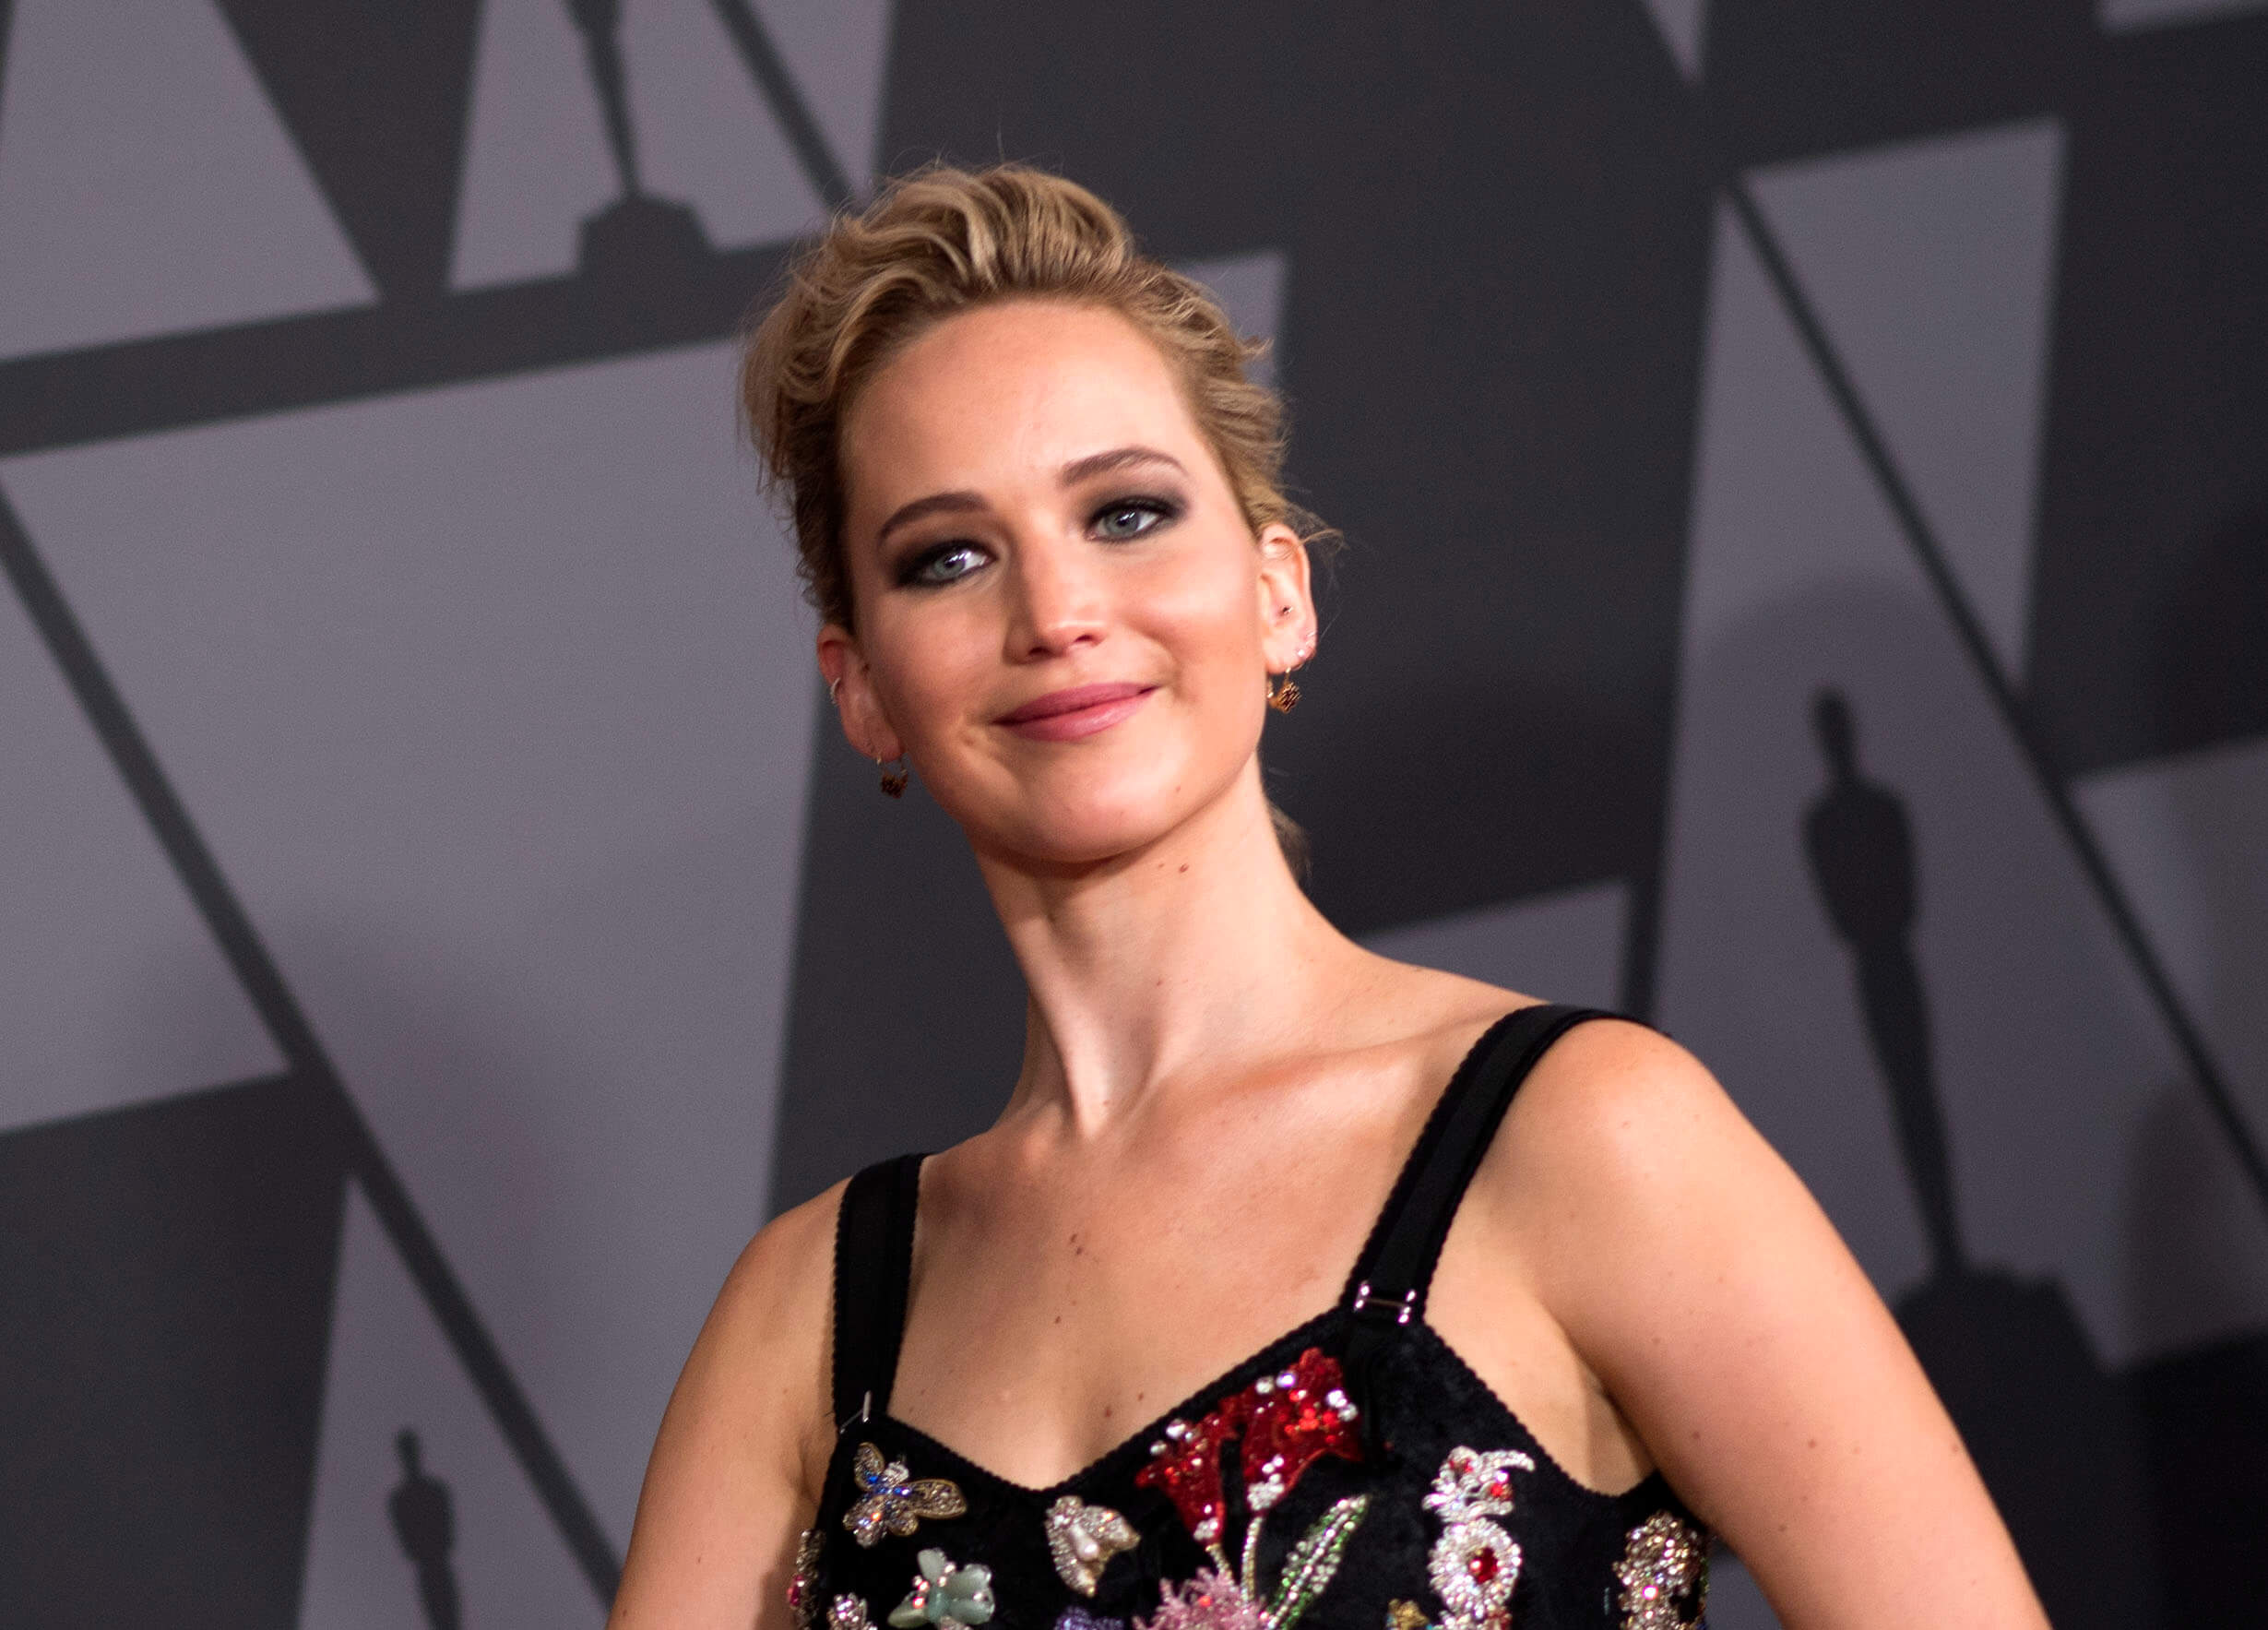 Jennifer Lawrence played Katniss Everdeen in the movie adaptation of THE HUNGER GAMES